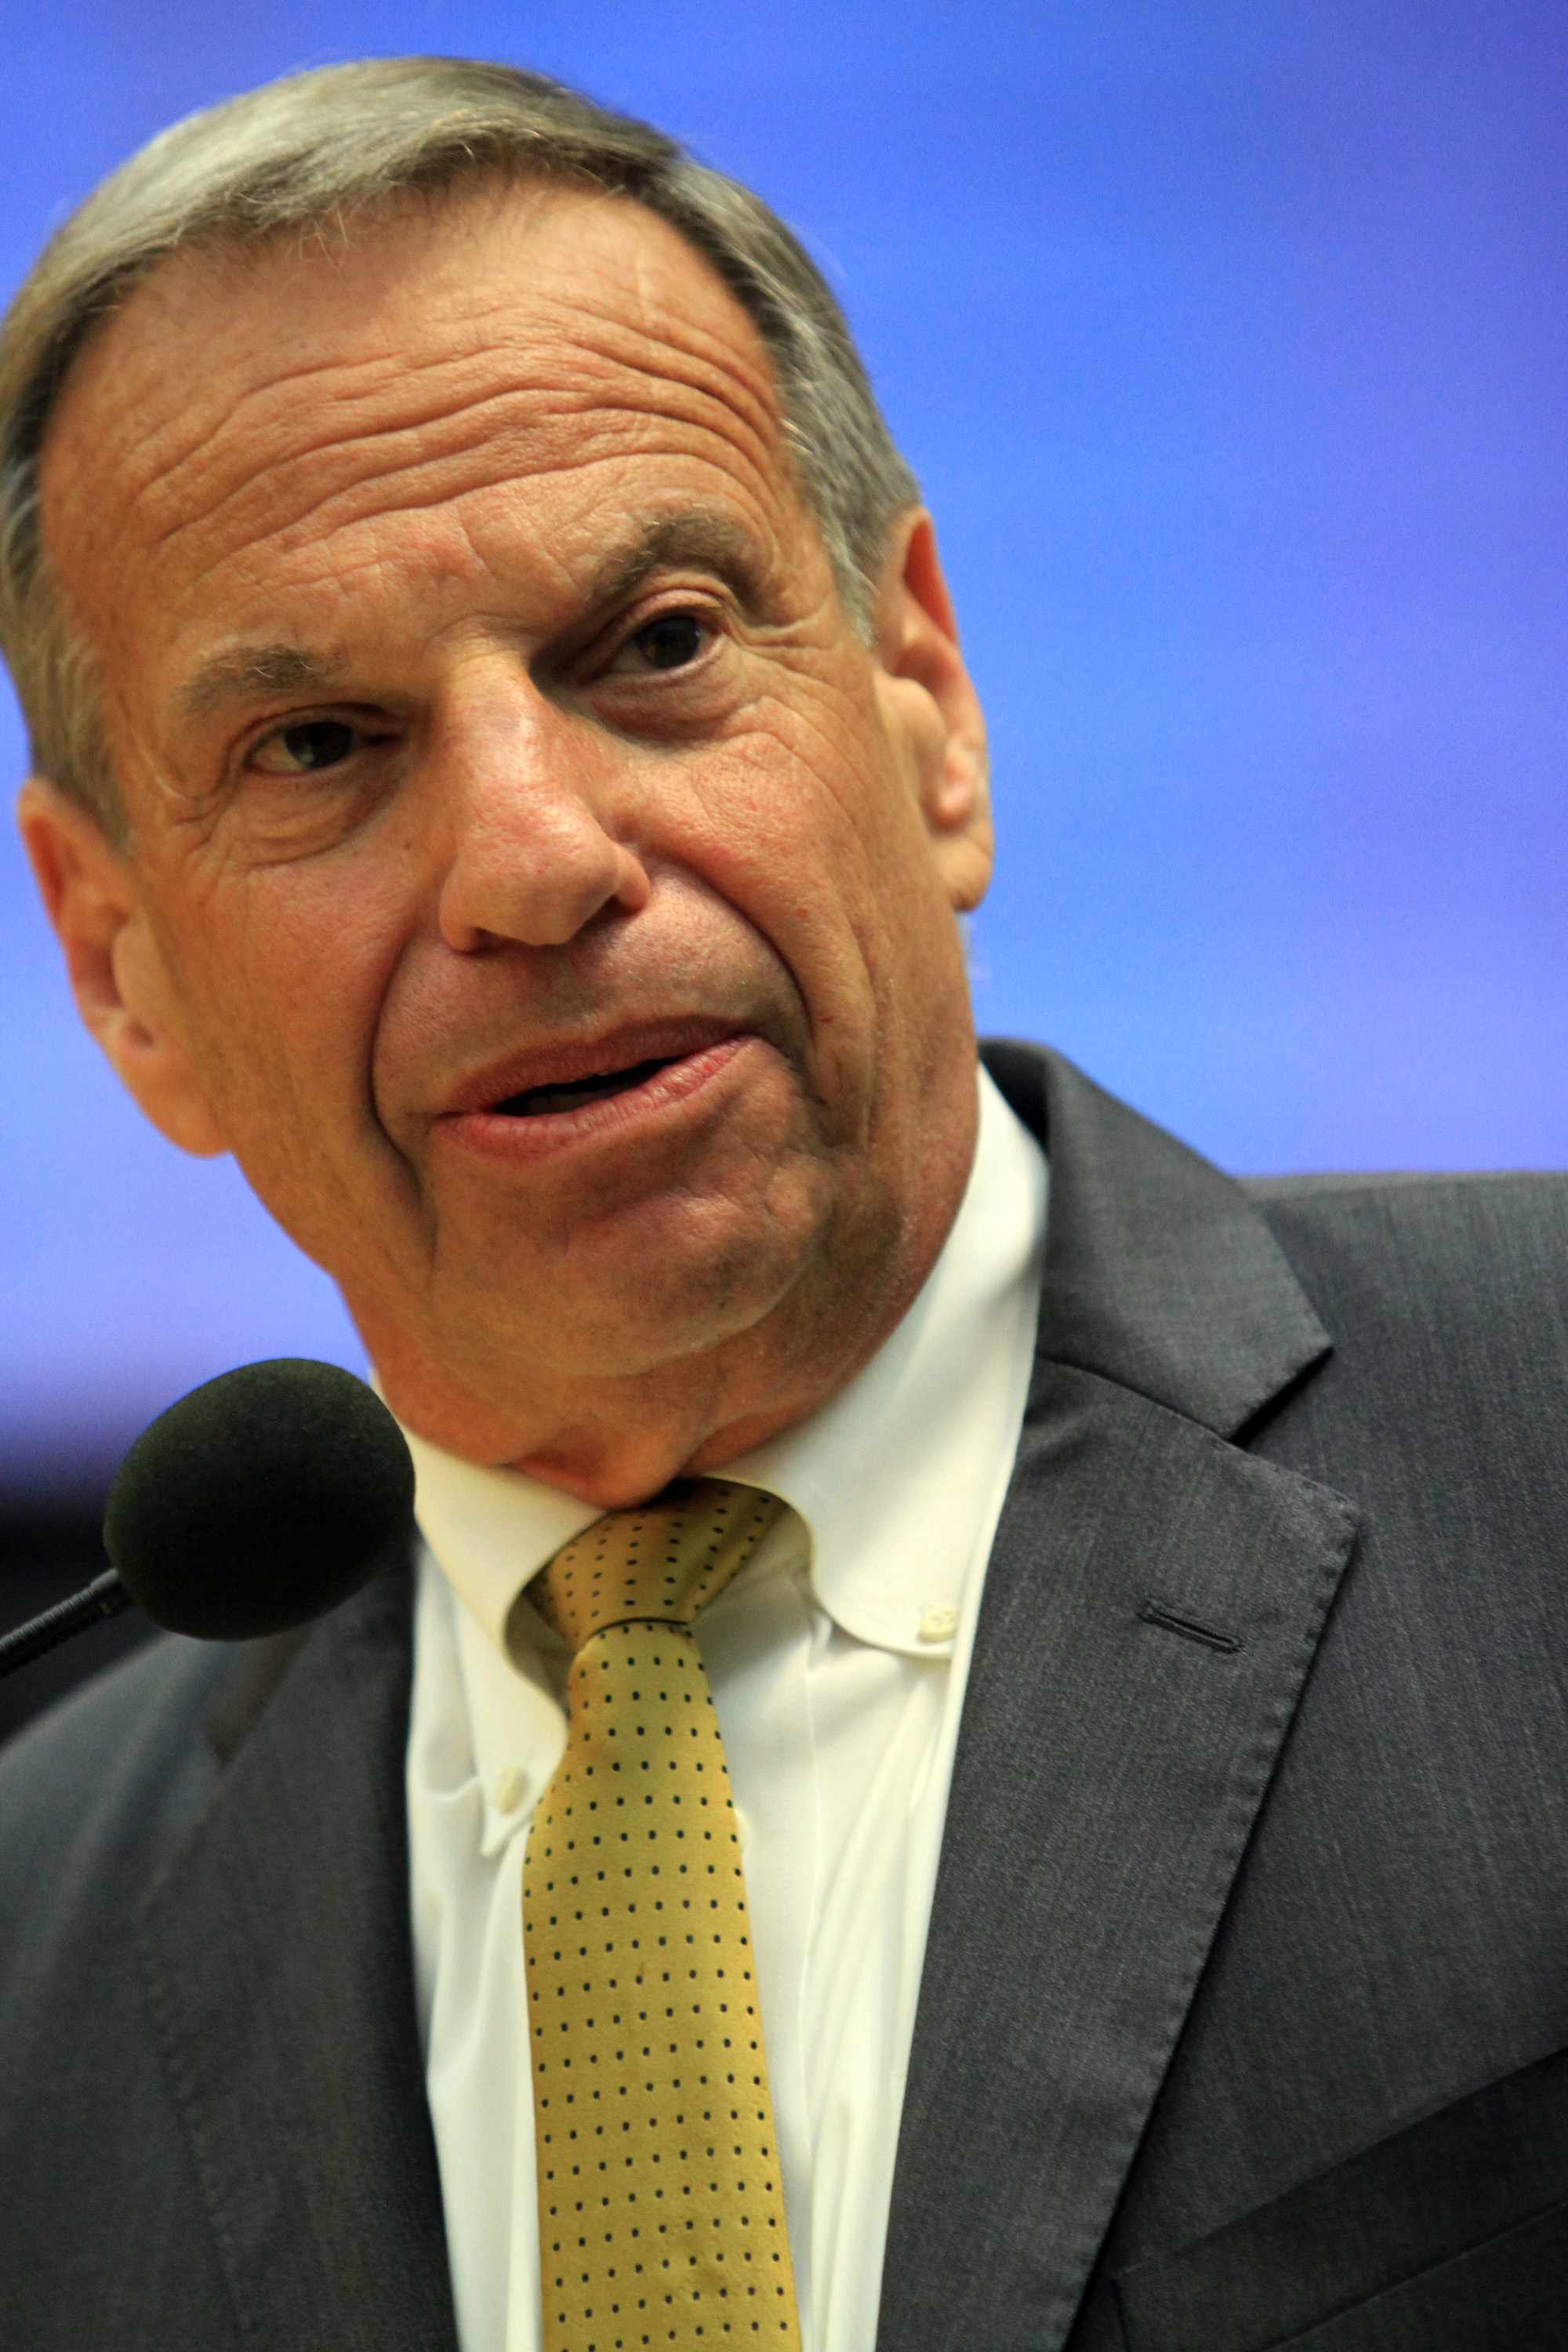 San Diego mayor Bob Filner announces his mayoral resignation to the city council on July 26, 2013 in San Diego, Calif.